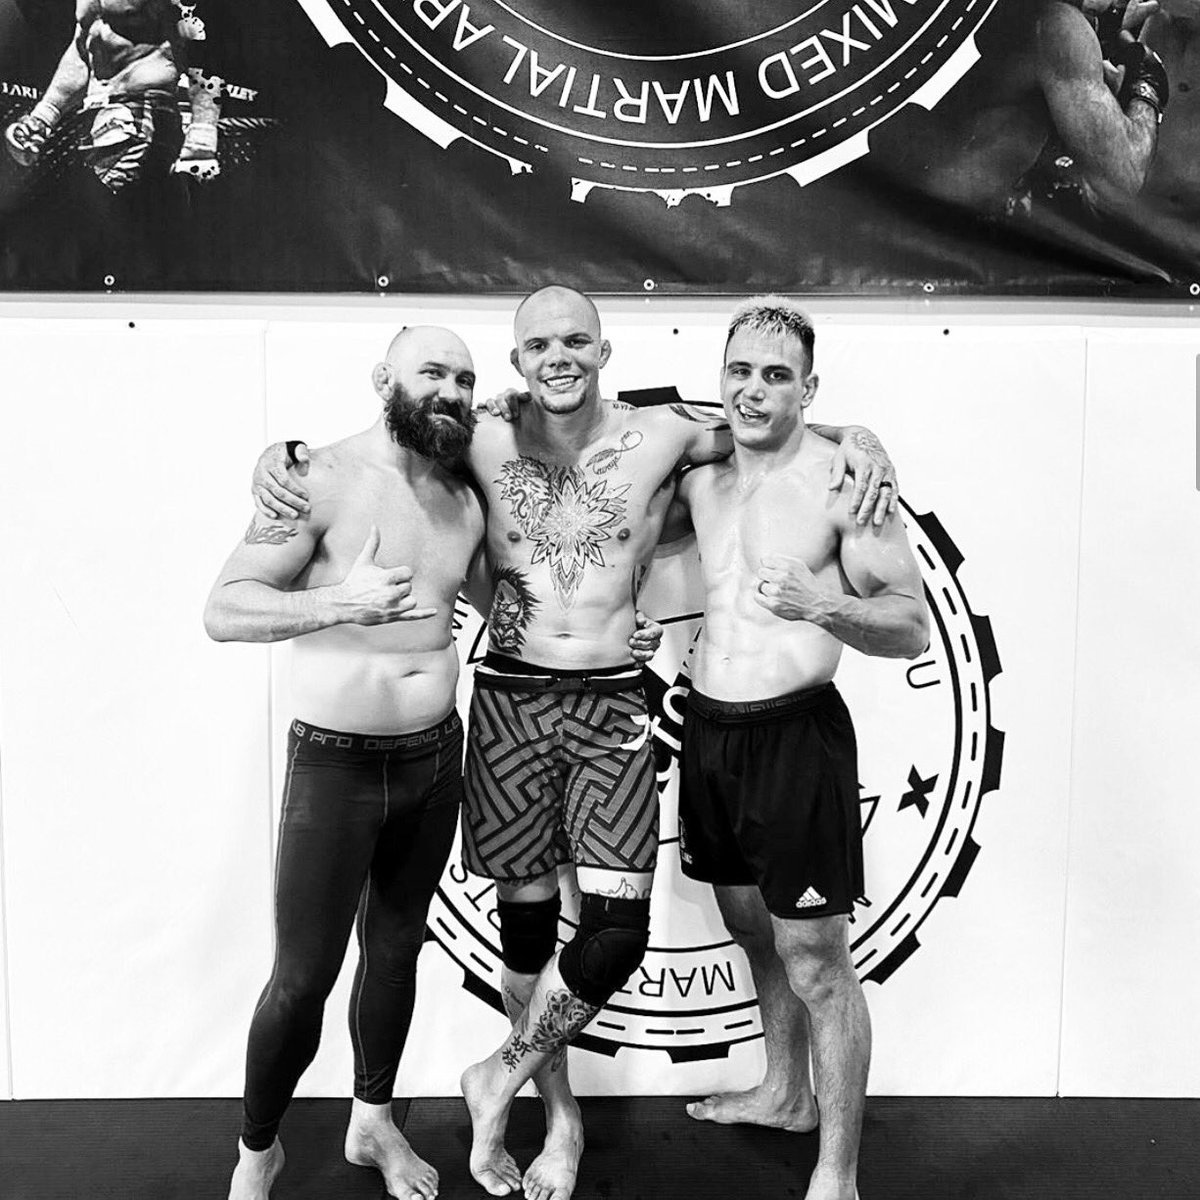 Up next for FX: @lionheartasmith and @ZakCummings return to the @ufc octagon Saturday, 8/29! ▪️ Then the following Tuesday, 9/1 @codybrundage1 gets his shot on @danawhite #DWCS -> all on @espn +! #FactoryX #Xonthechest #FEARIS https://t.co/z04bEVnJWT